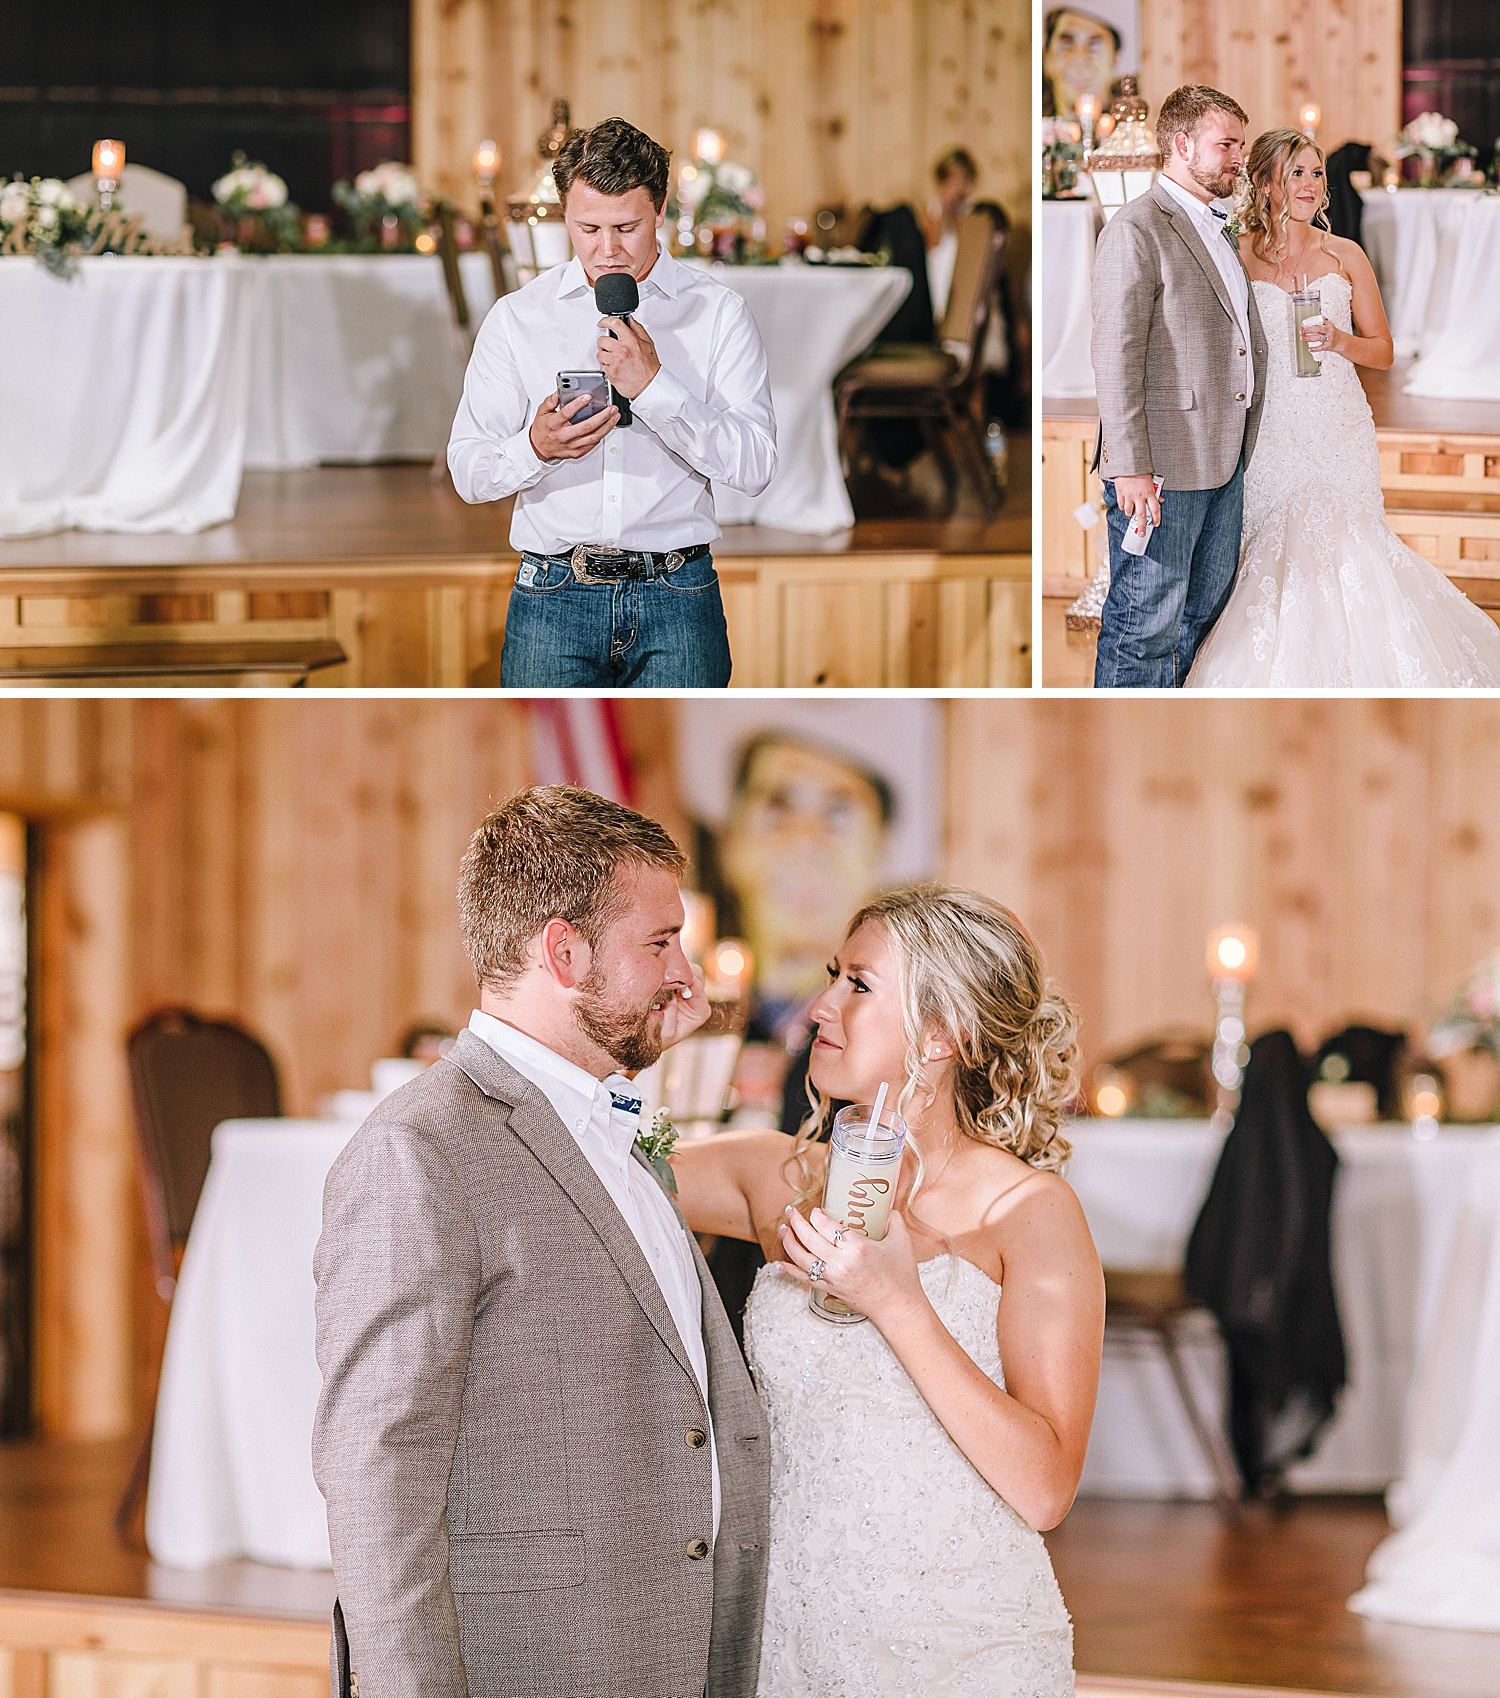 Rackler-Ranch-LaVernia-Texas-Wedding-Carly-Barton-Photography_0115.jpg